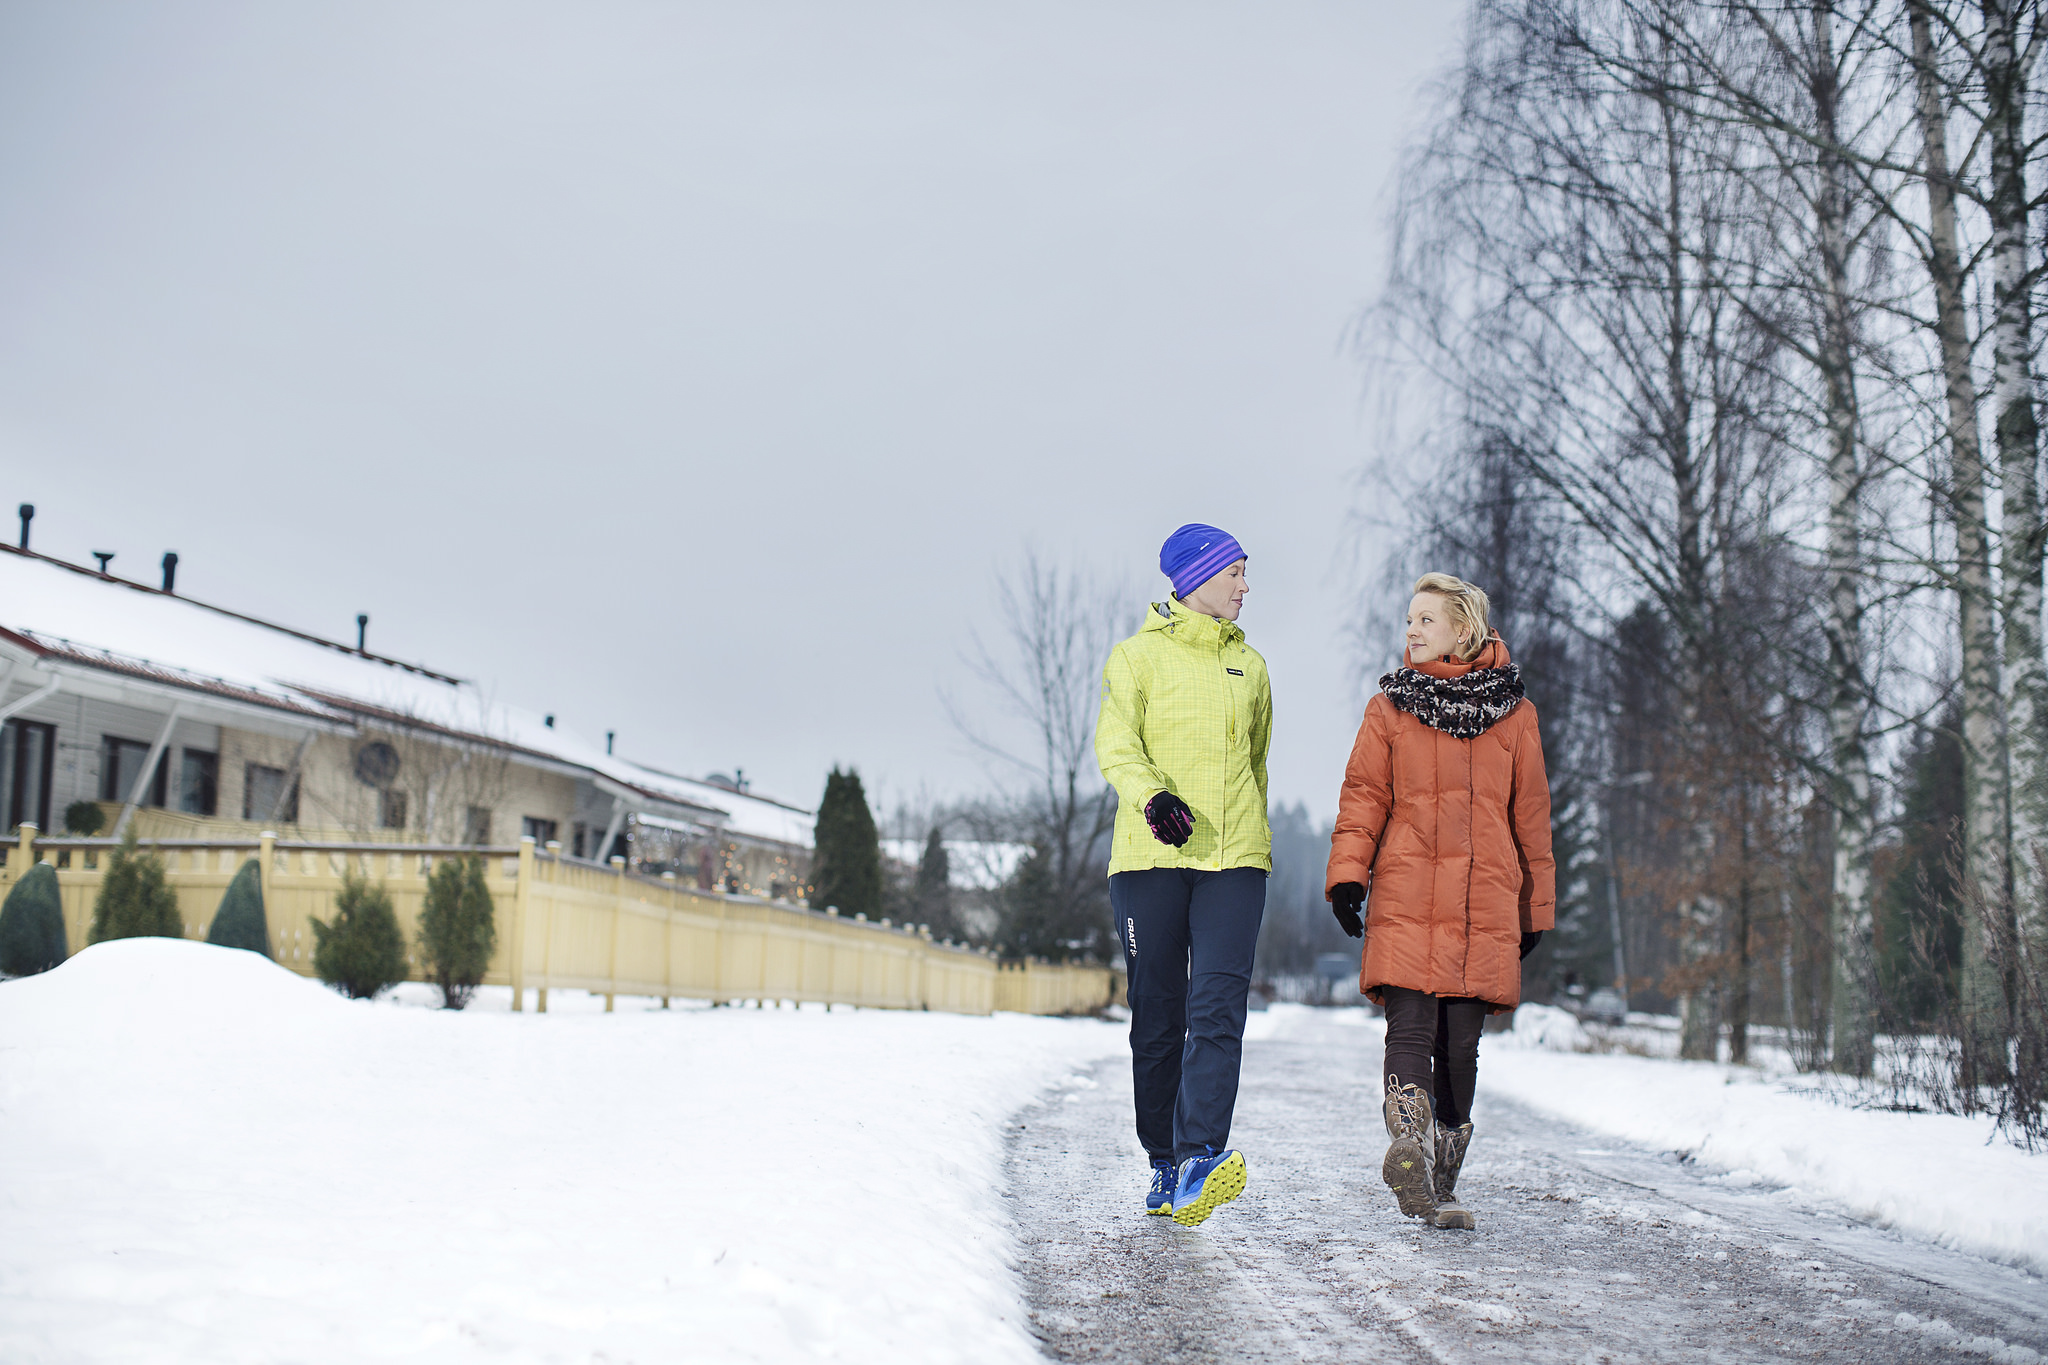 Two people are walking in a slippery road during winter